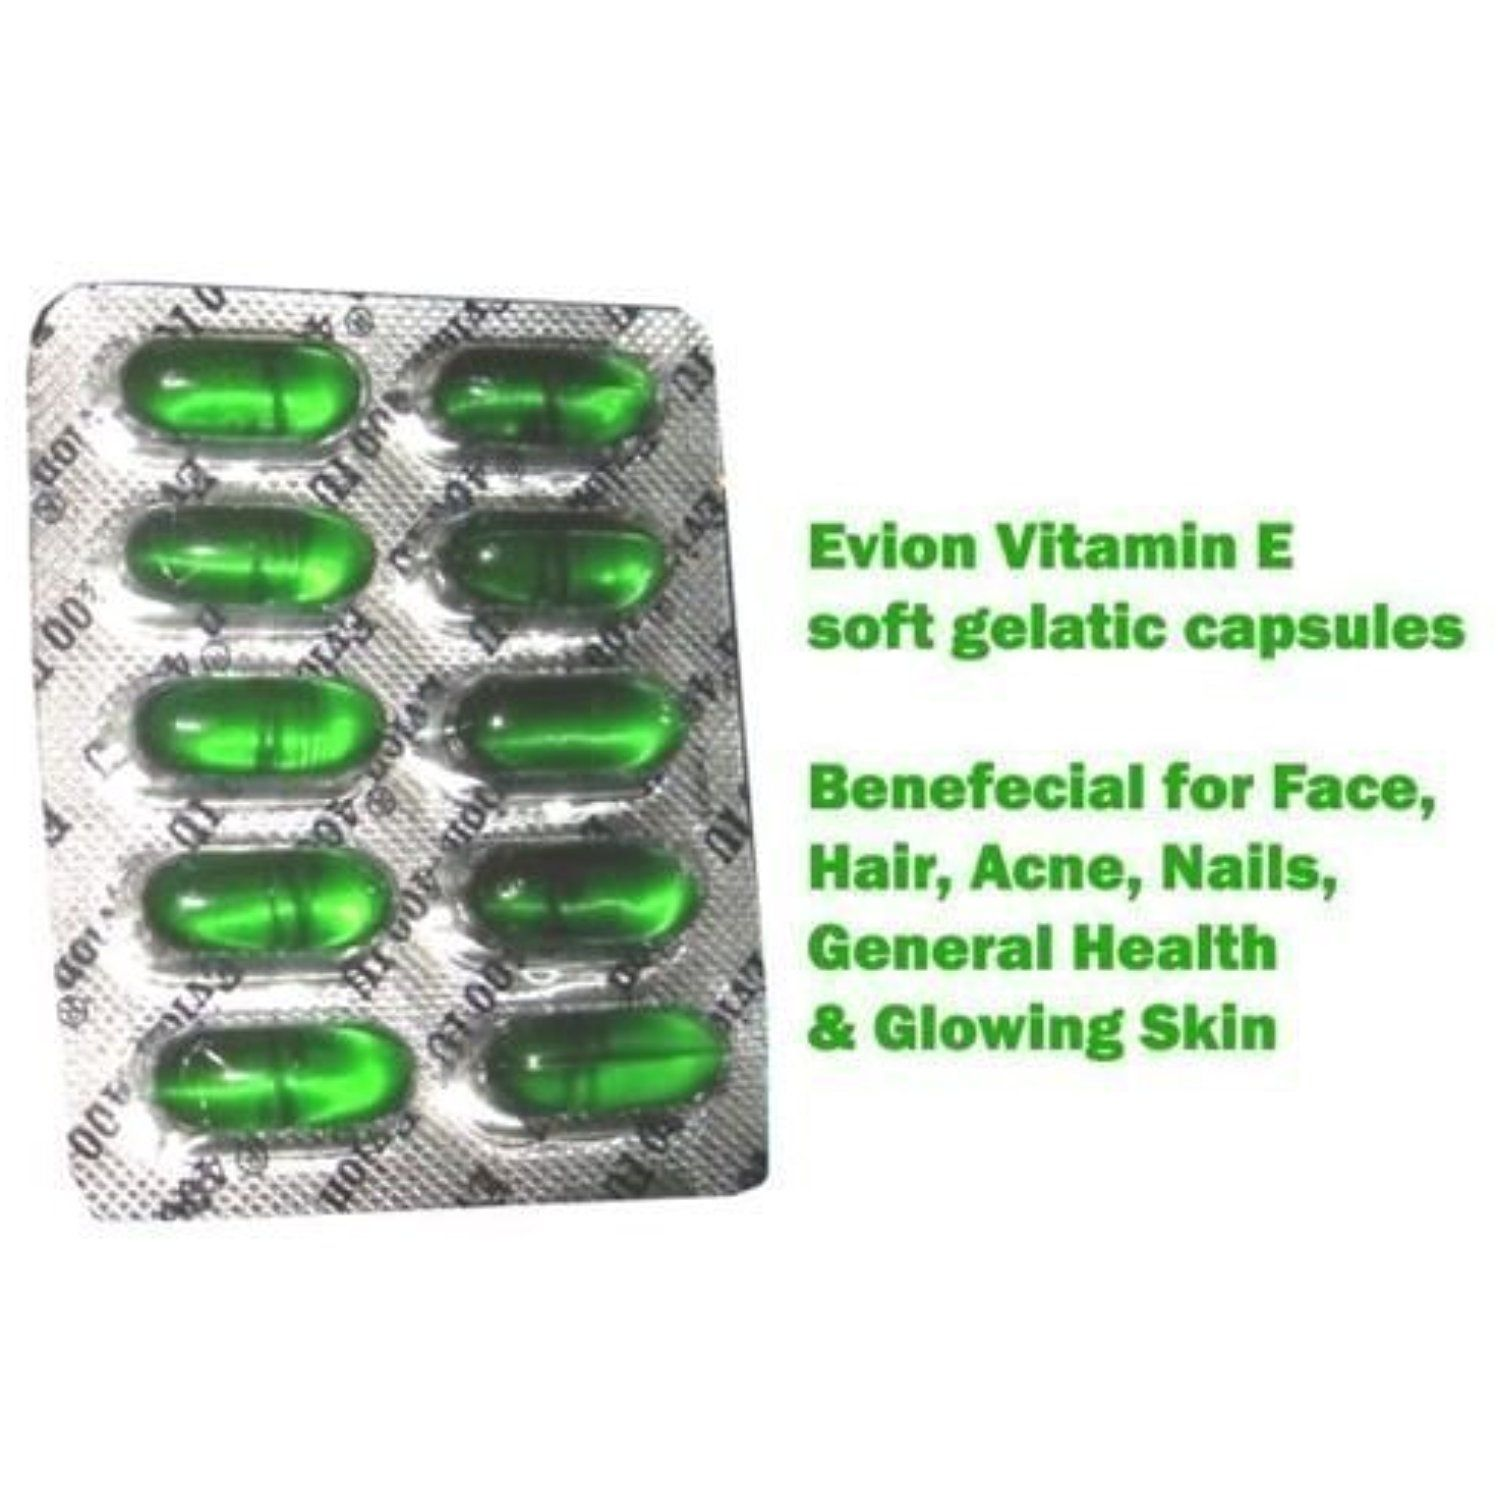 100 Evion Vitamin E Capsules For Face Hair Acne Nails General Health Glowing Skin 400mg To View F Vitamin E For Face Vitamins For Hair Loss Hair Skin Nails